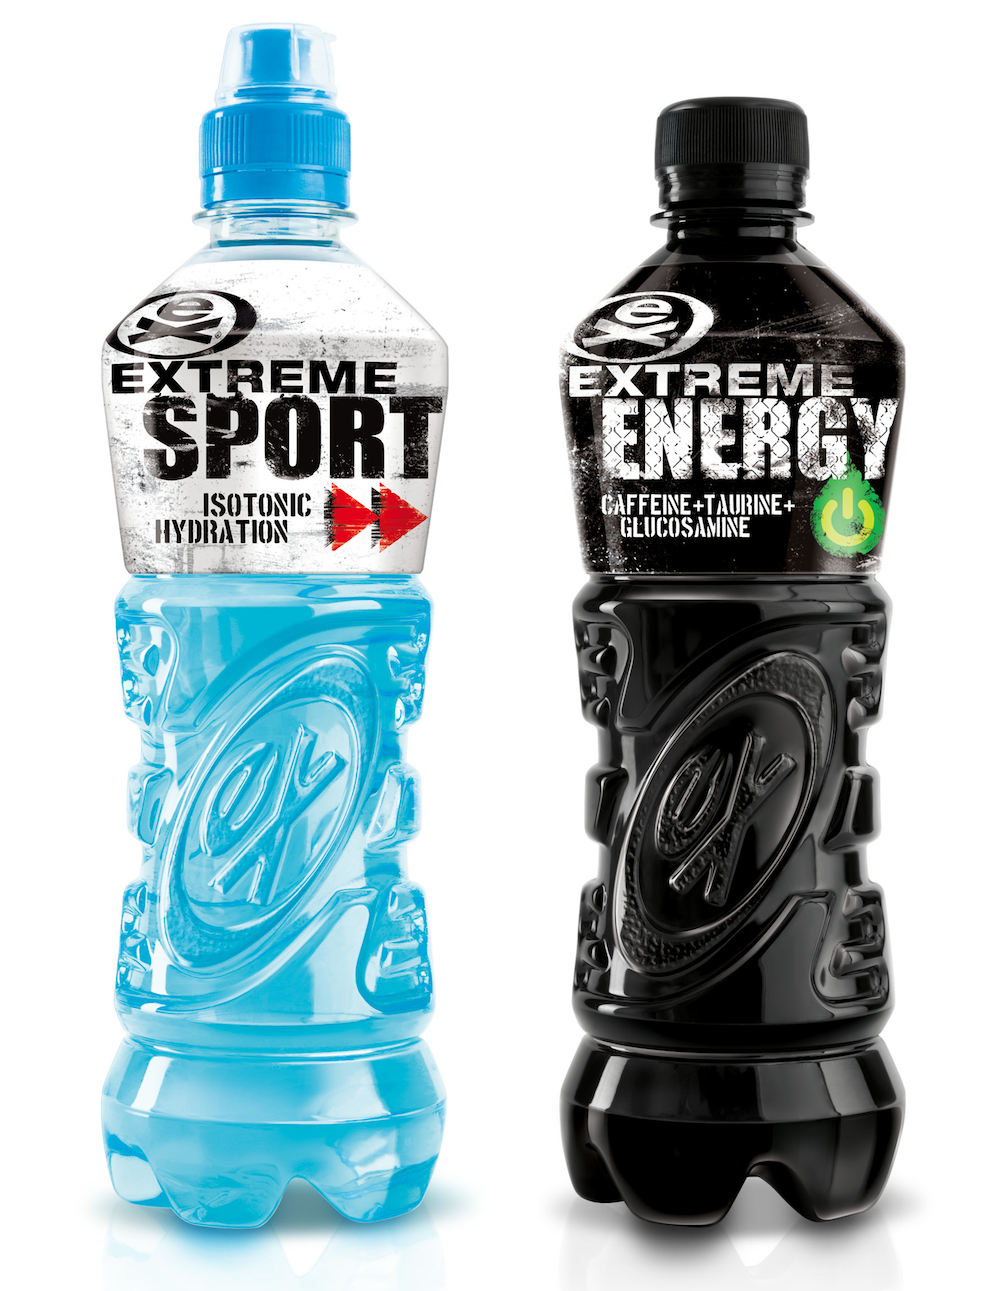 Photo: Extreme, a new soft drink from Vimto